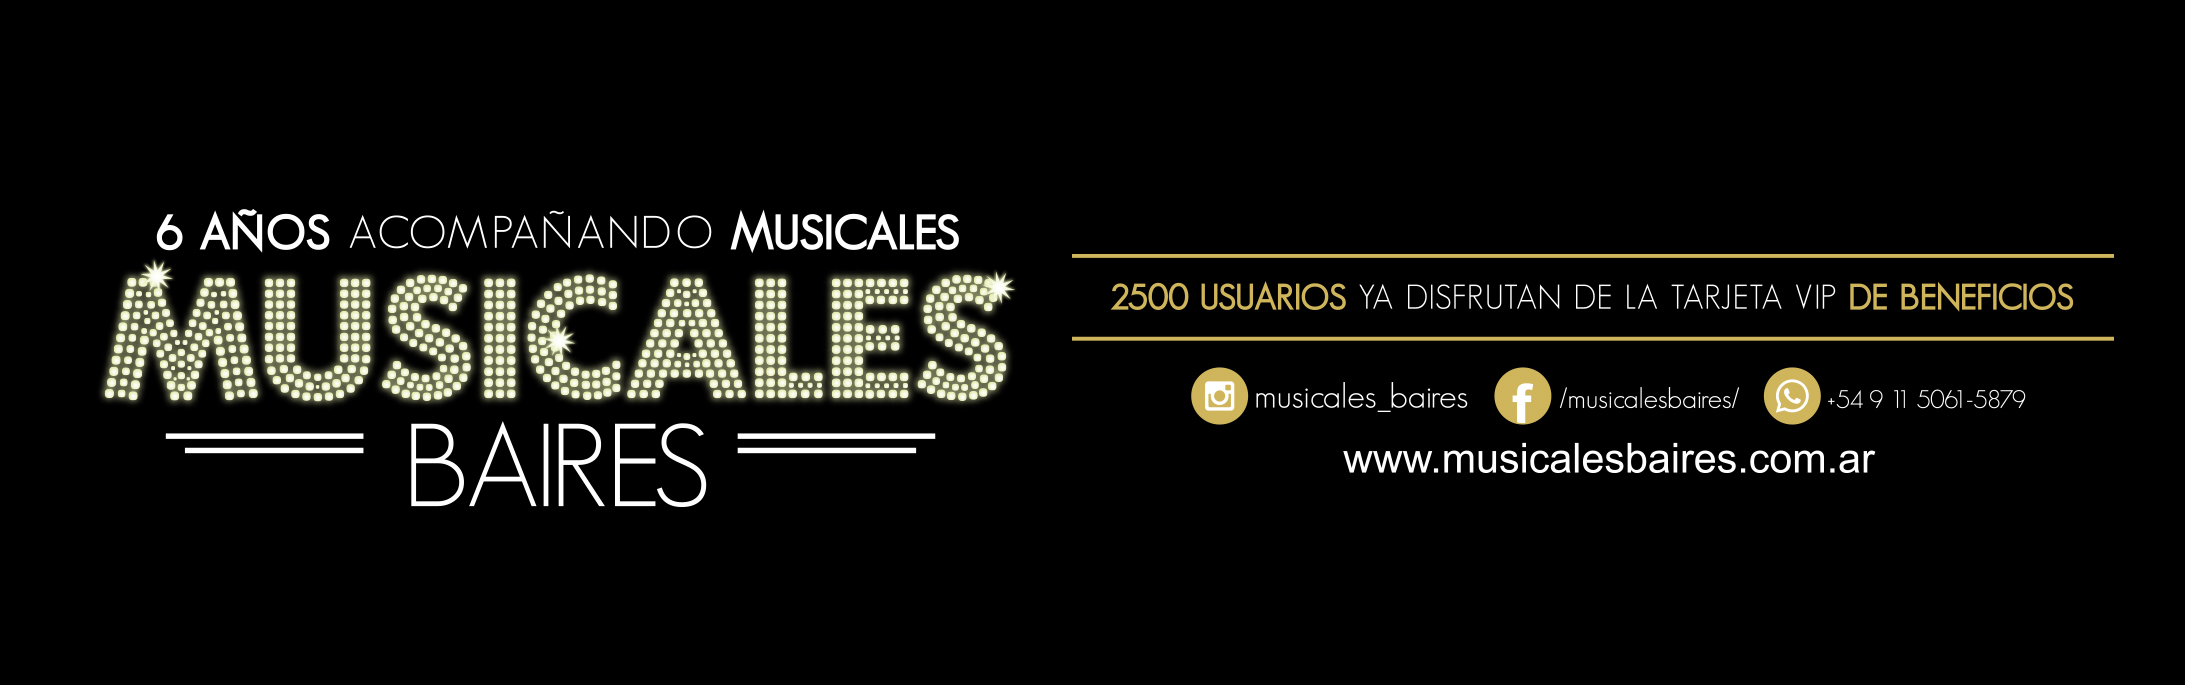 musicales baires